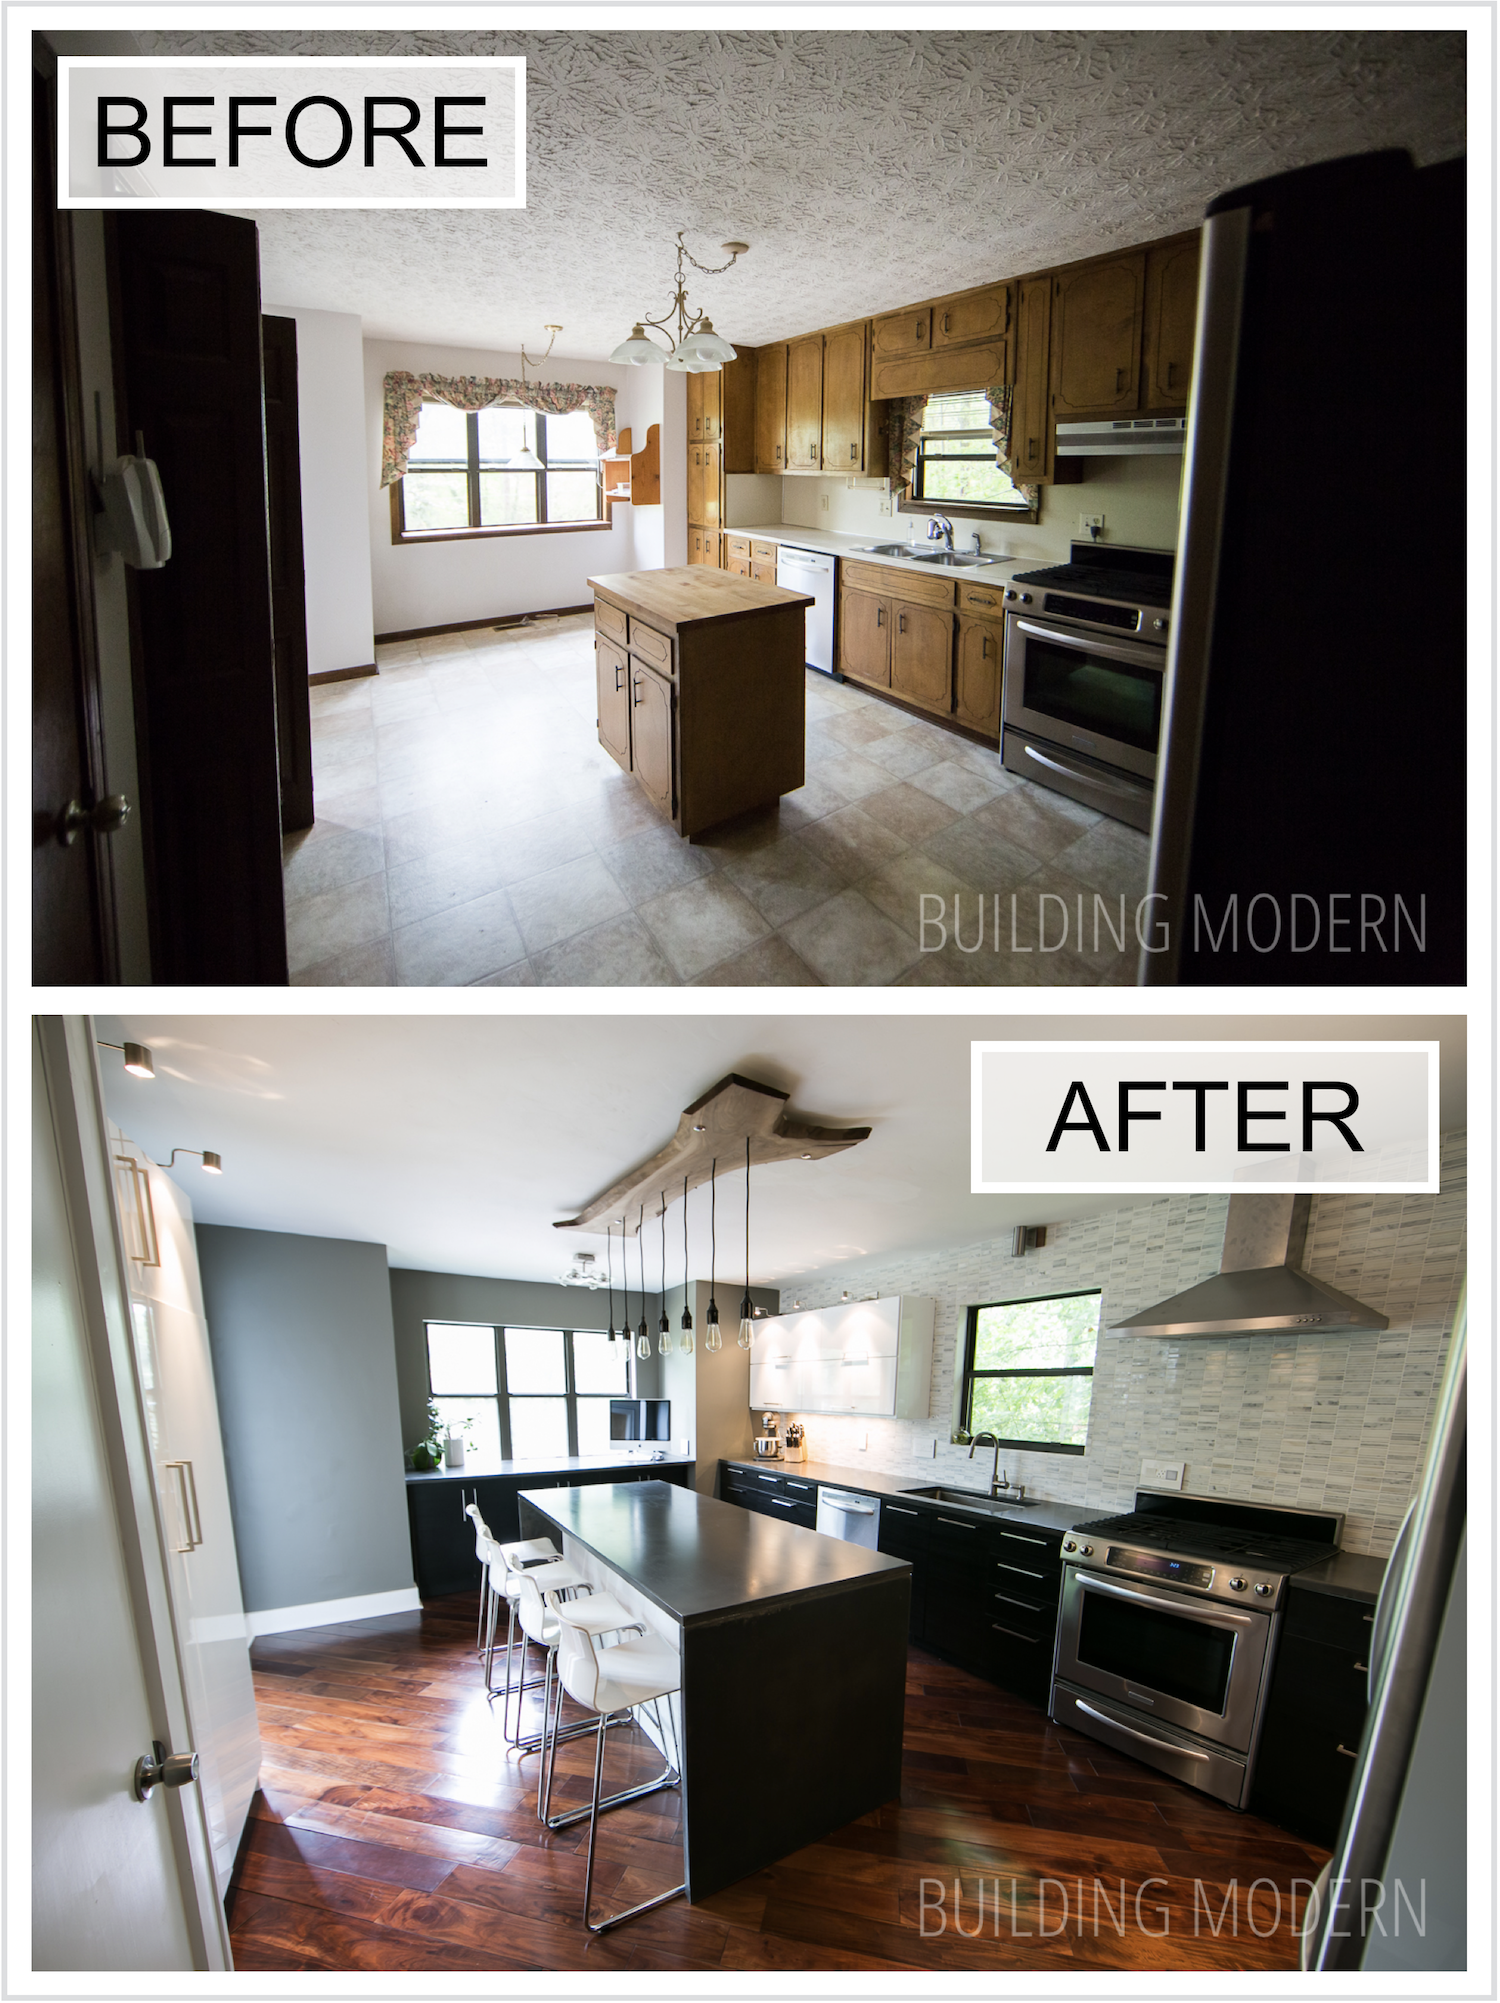 Before and after 1980s contemporary style house DIY kitchen renovation